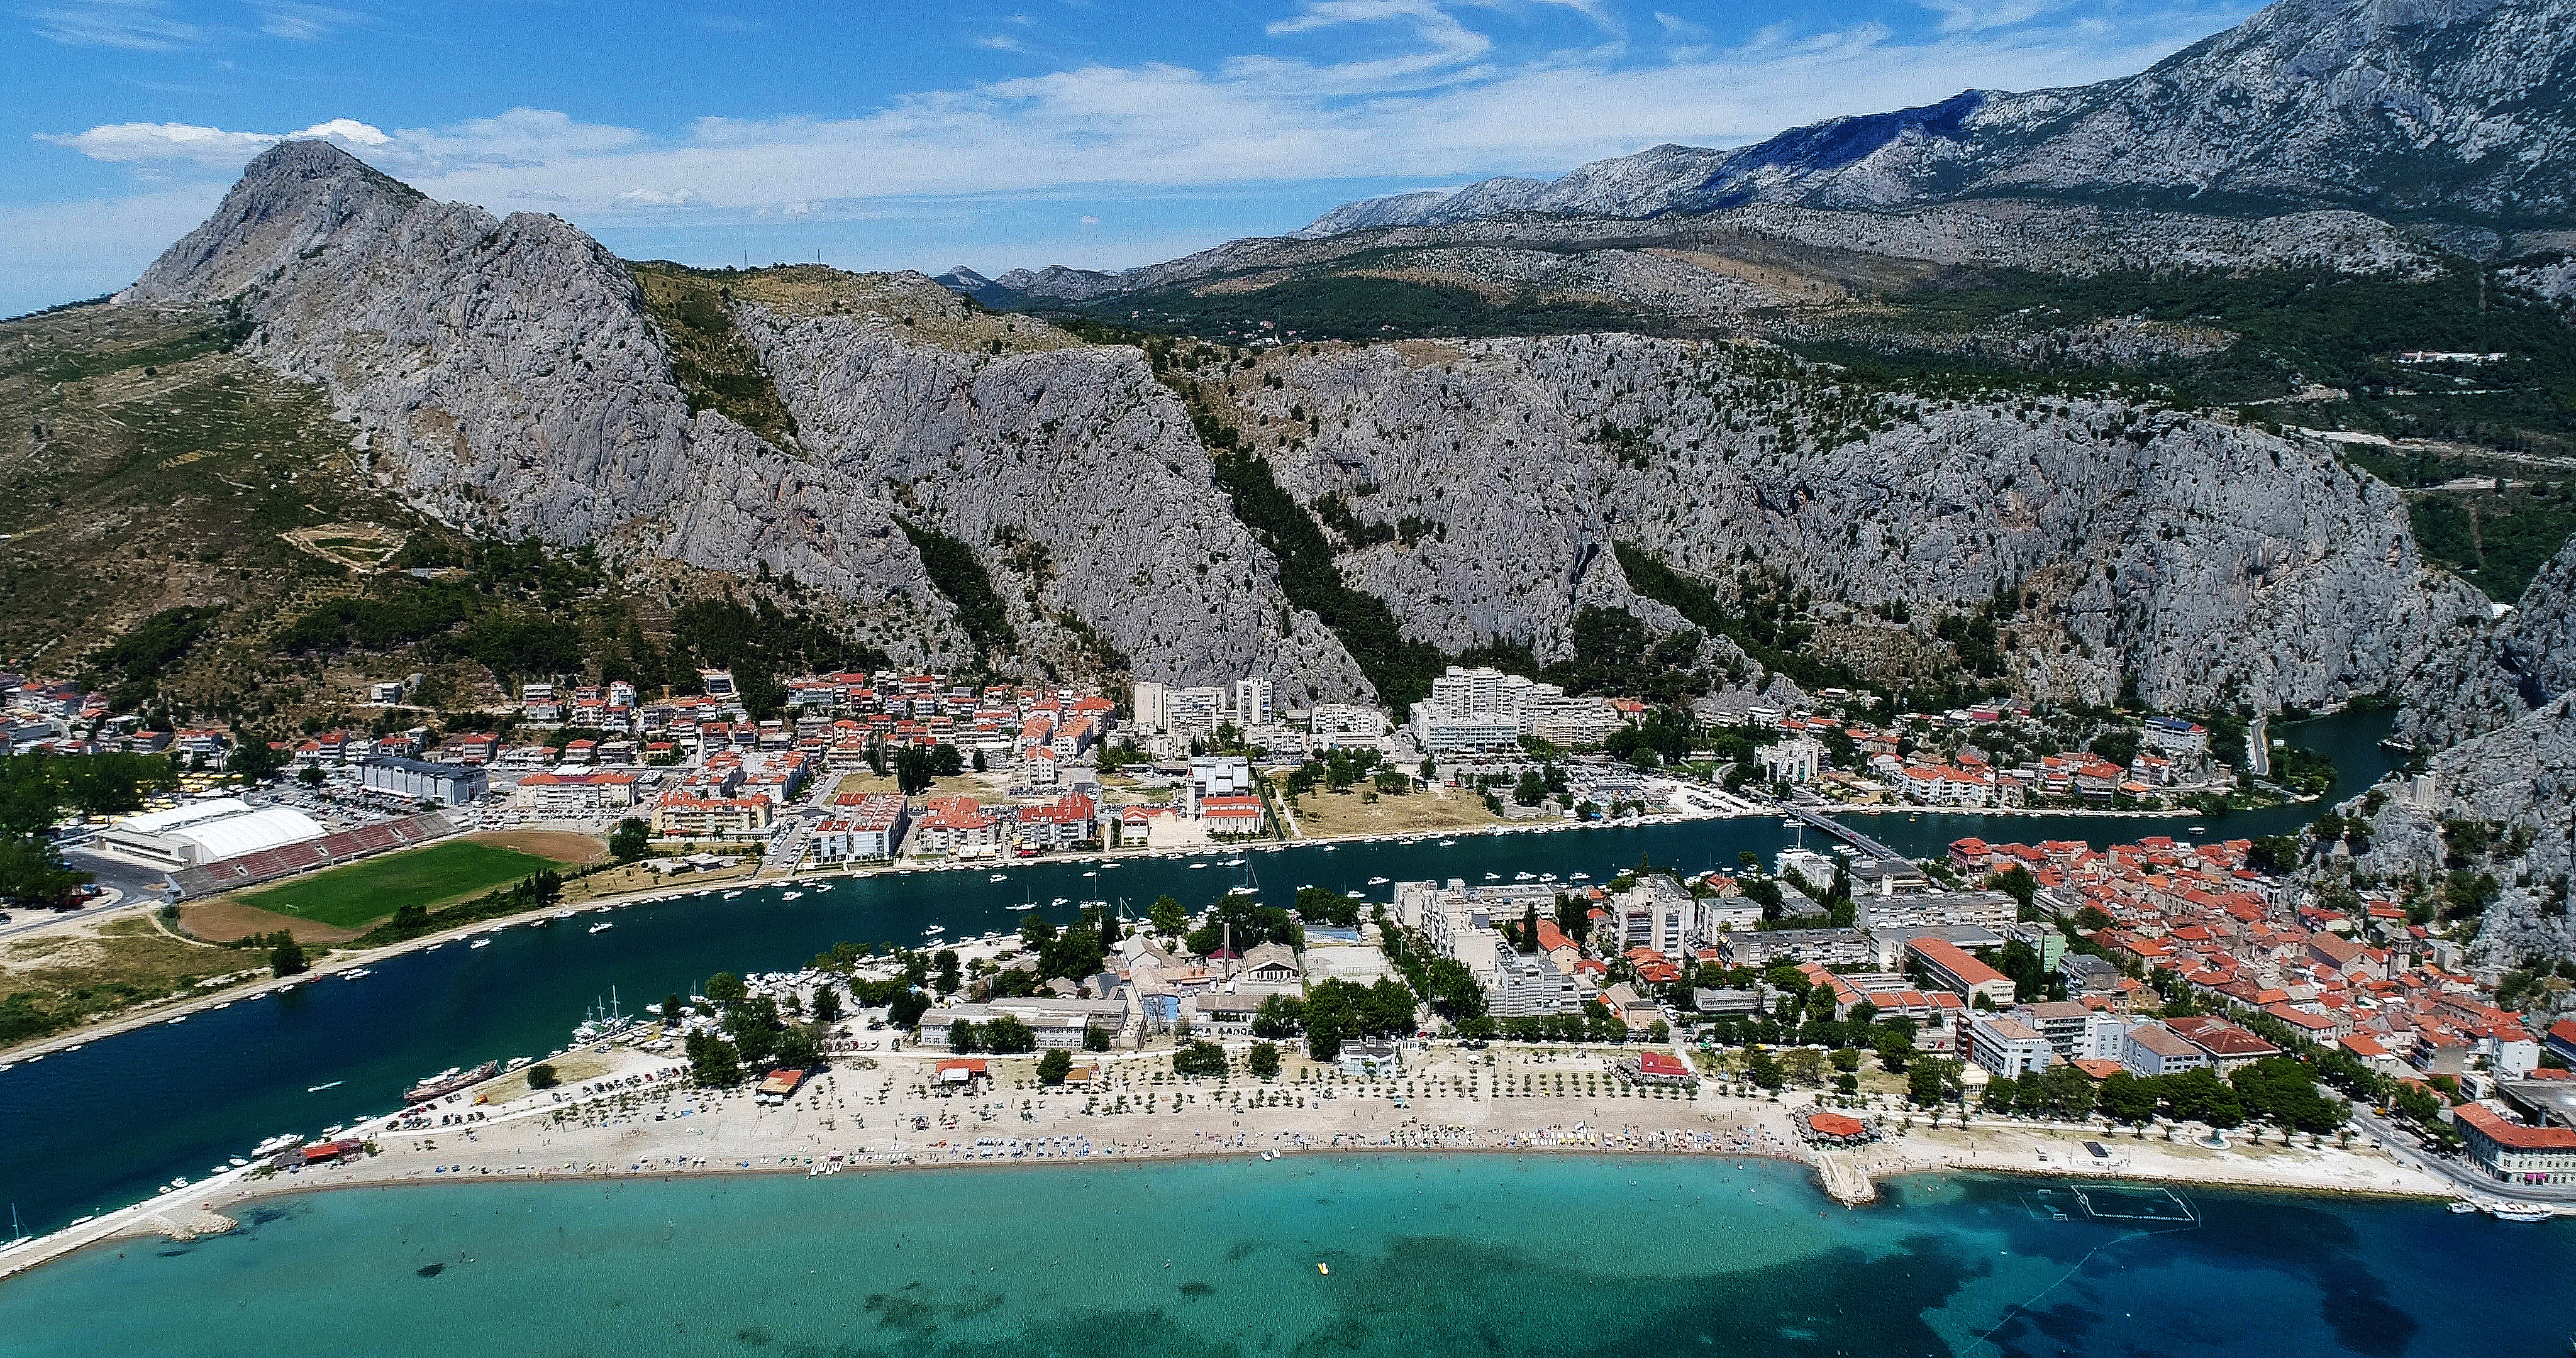 THINGS TO DO IN OMIS: 5 BEACHES TO ENJOY TO THE FULLEST